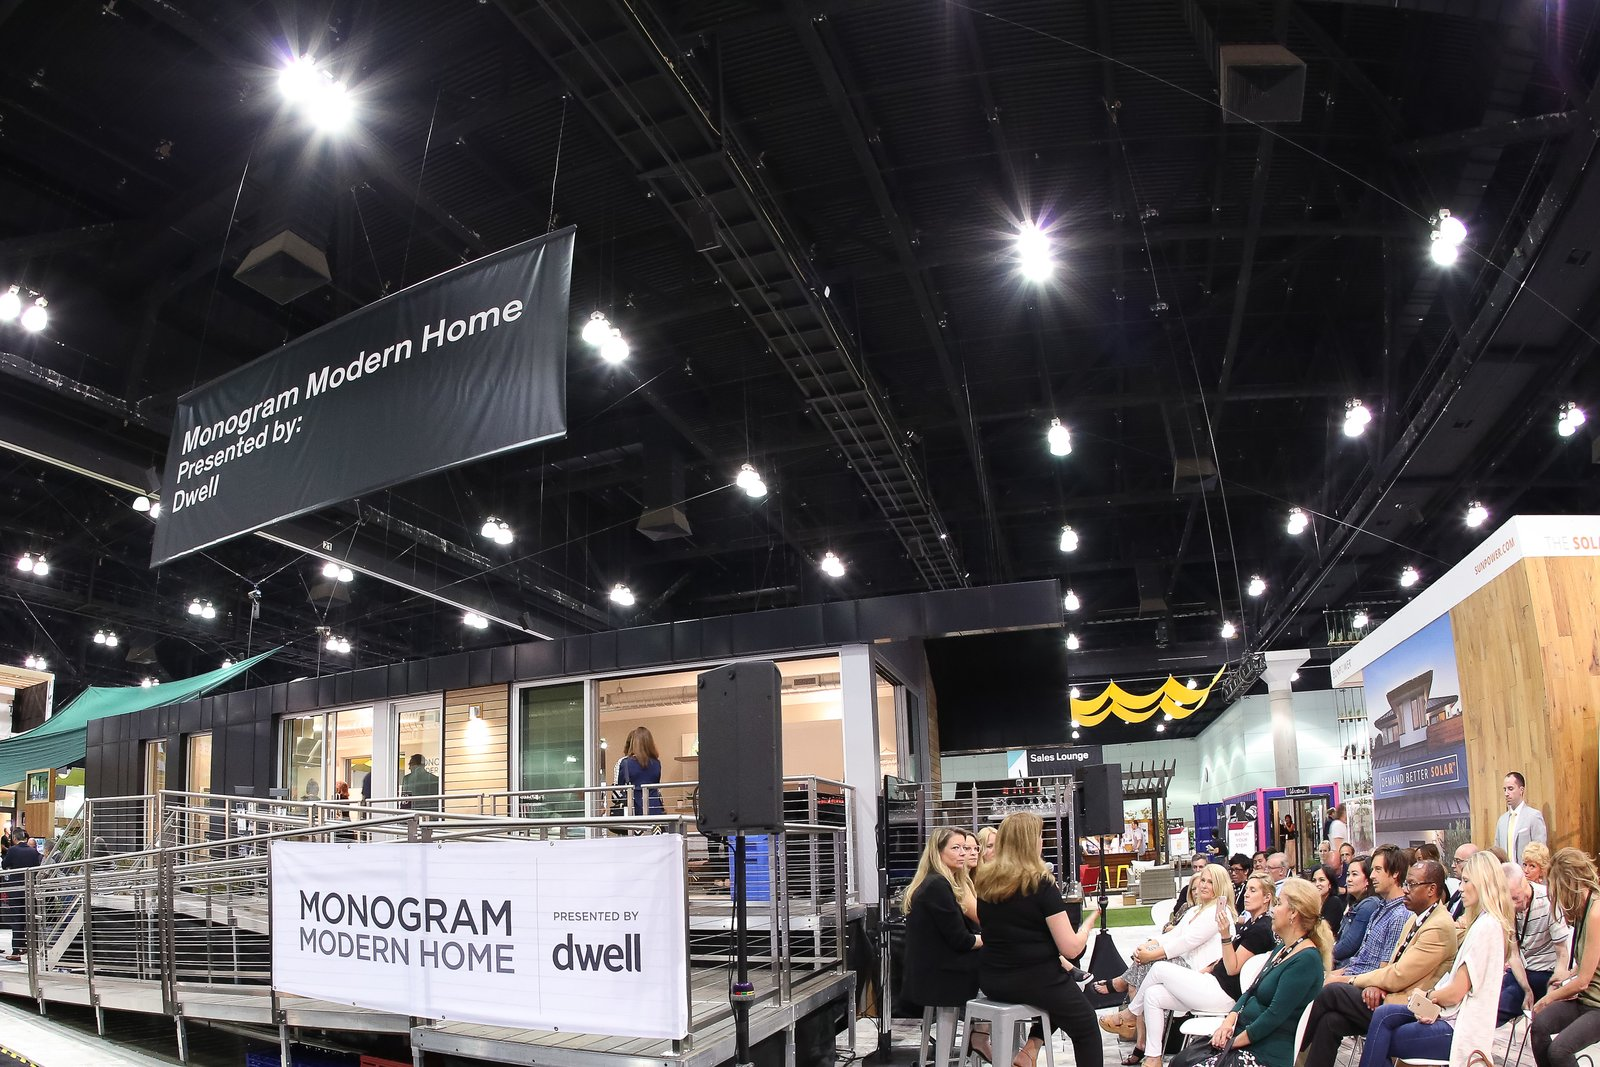 The home joined over 300 exhibiting brands and 2,000 modern furnishings and products at Dwell on Design. The prefab's builder, Method Homes, also staffed an adjacent booth on the show floor.  Photo 2 of 6 in Monogram Modern Home Tour Joins the Los Angeles Design Scene